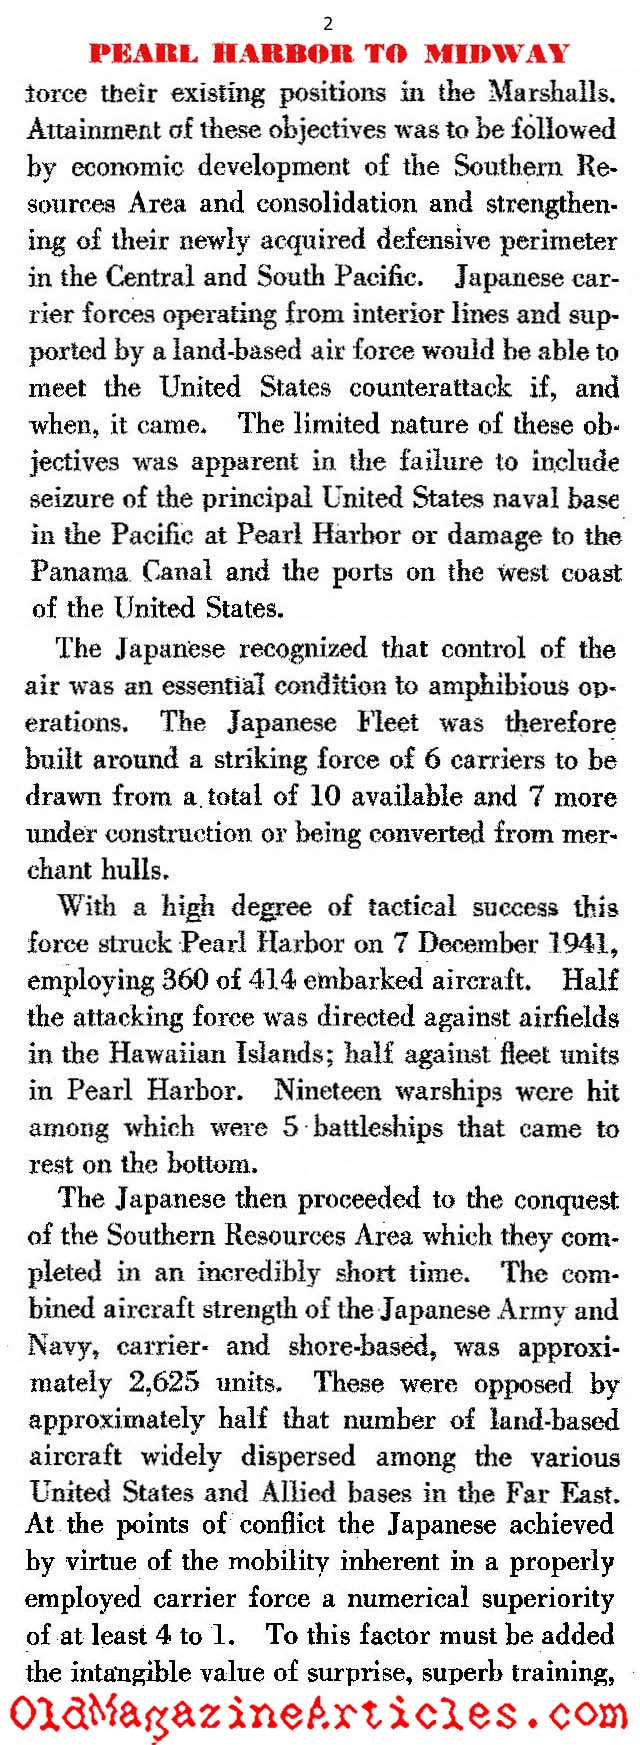 The U.S. Navy's War: Pearl Harbor to Midway (Dept. of the Navy, 1947)